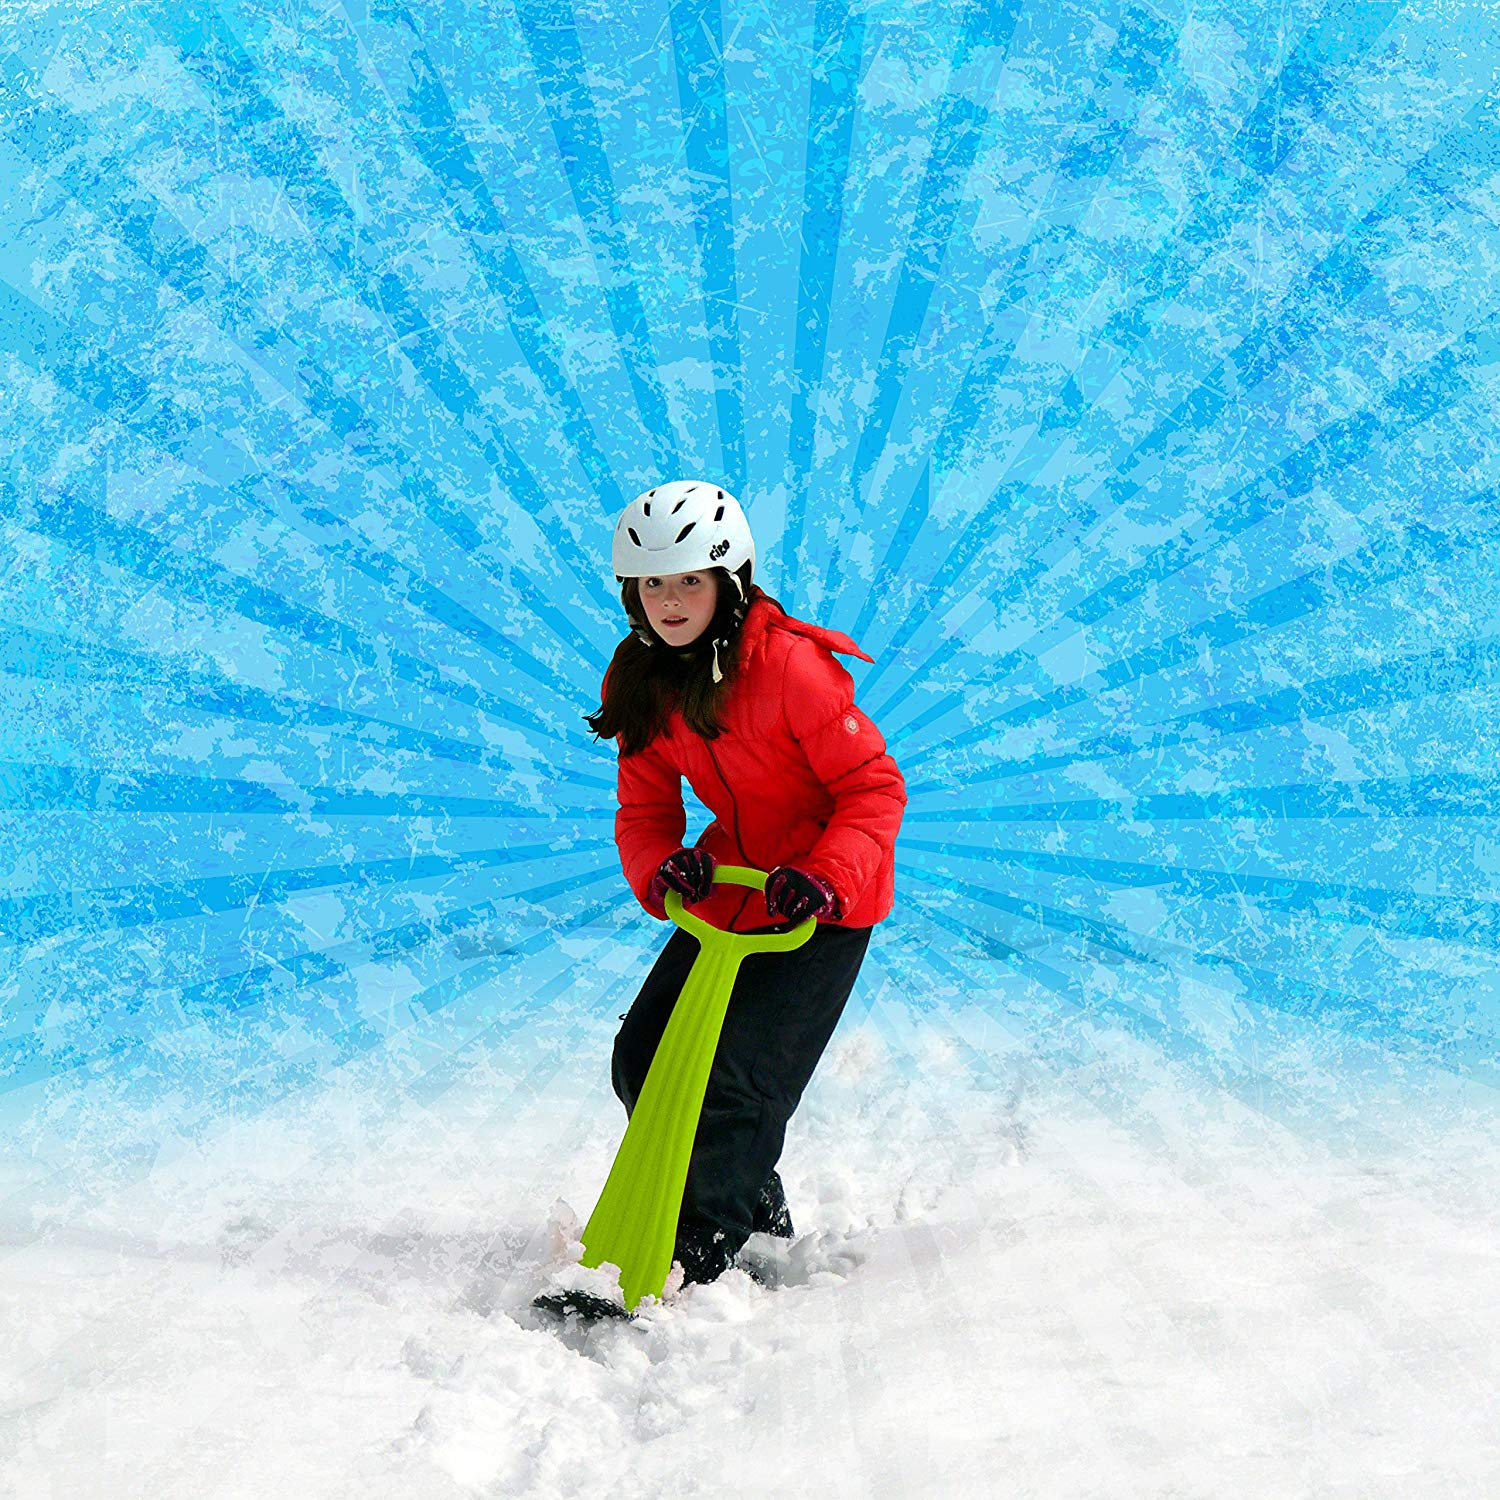 Top 5 best snow scooters in 2021 review